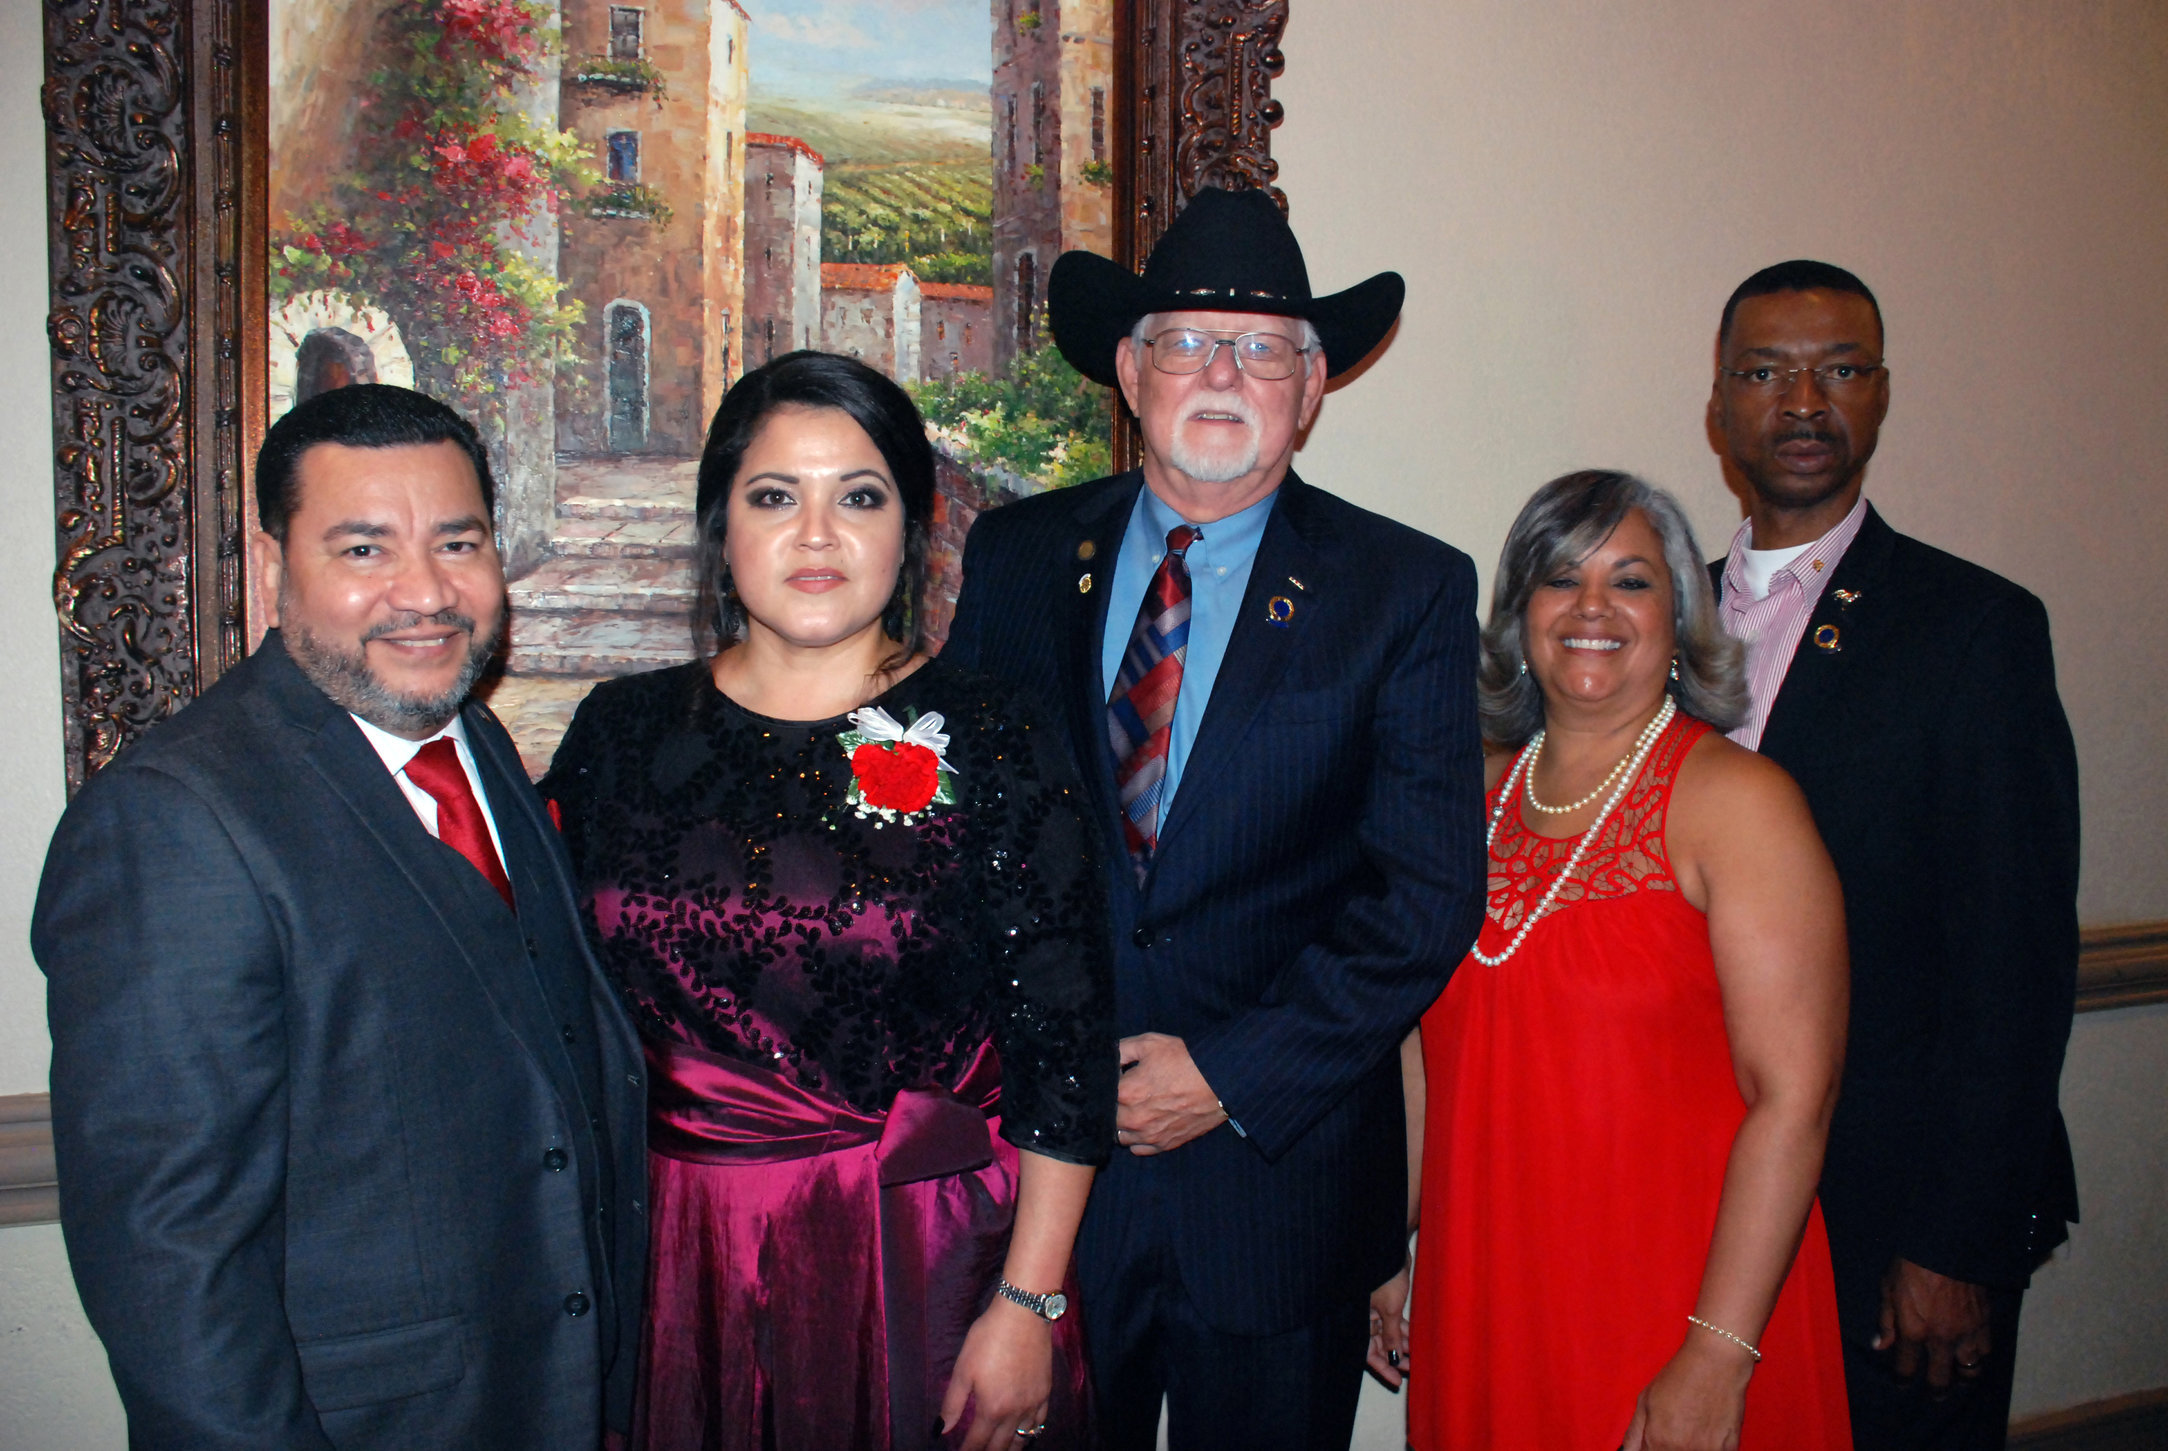 41st Anniversary Banquet of Sociedad Cultural Hispanoamericana (Hispanic-American Cultural Society) on April 1, 207 at Club Hood on Fort Hood